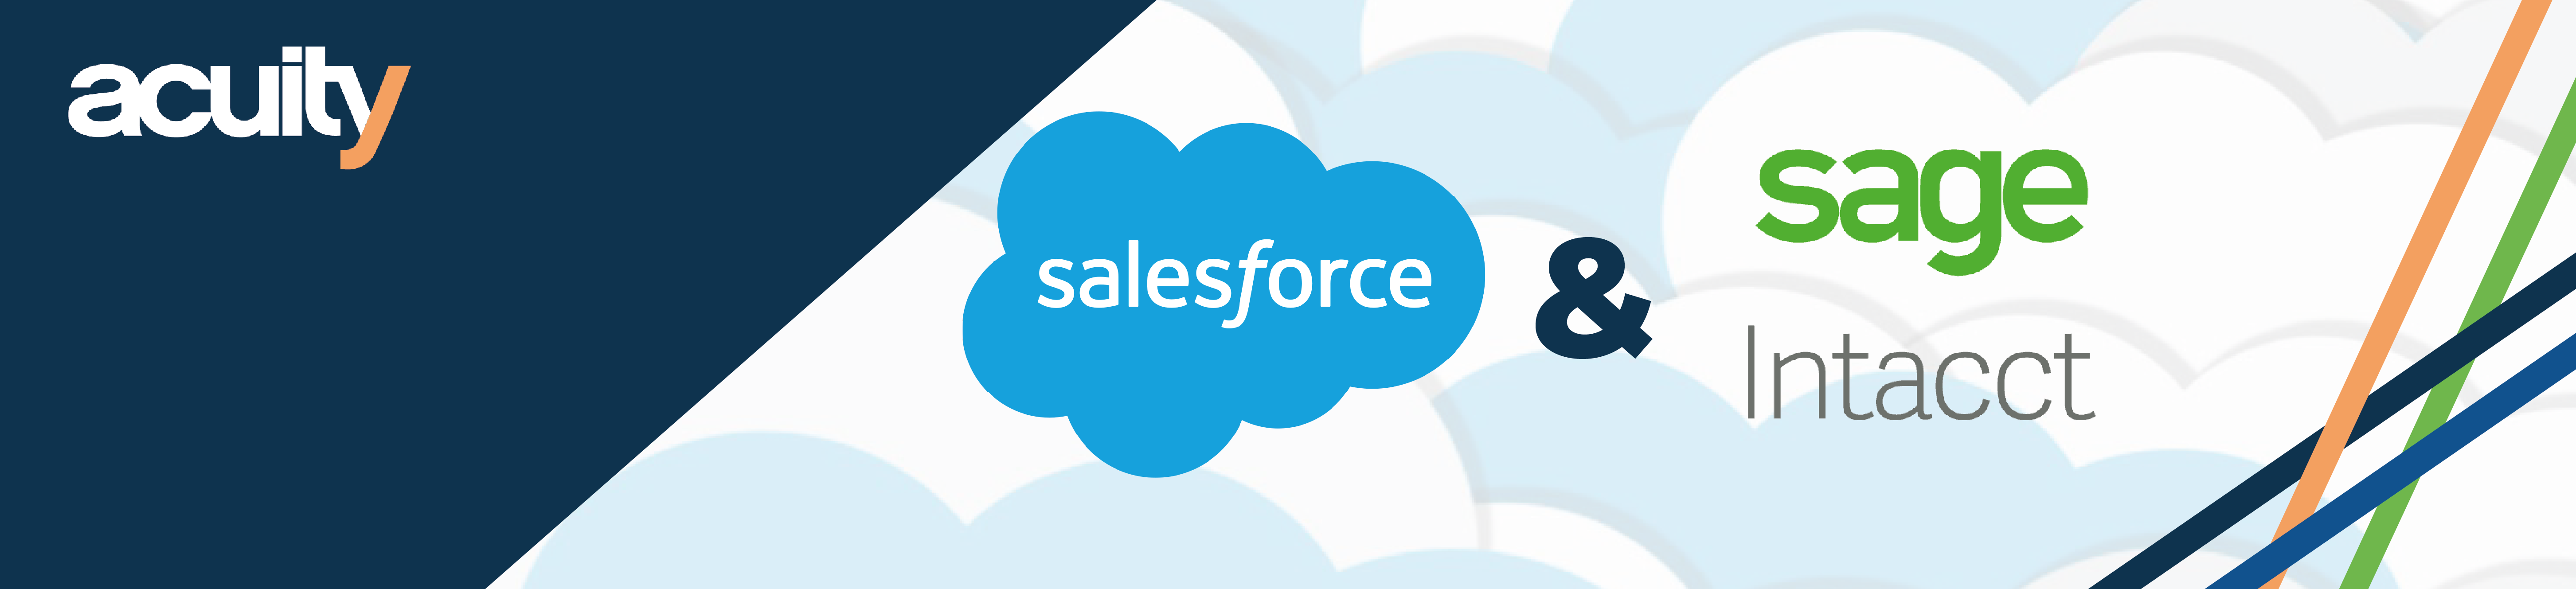 salesforce and sage intacct banner image